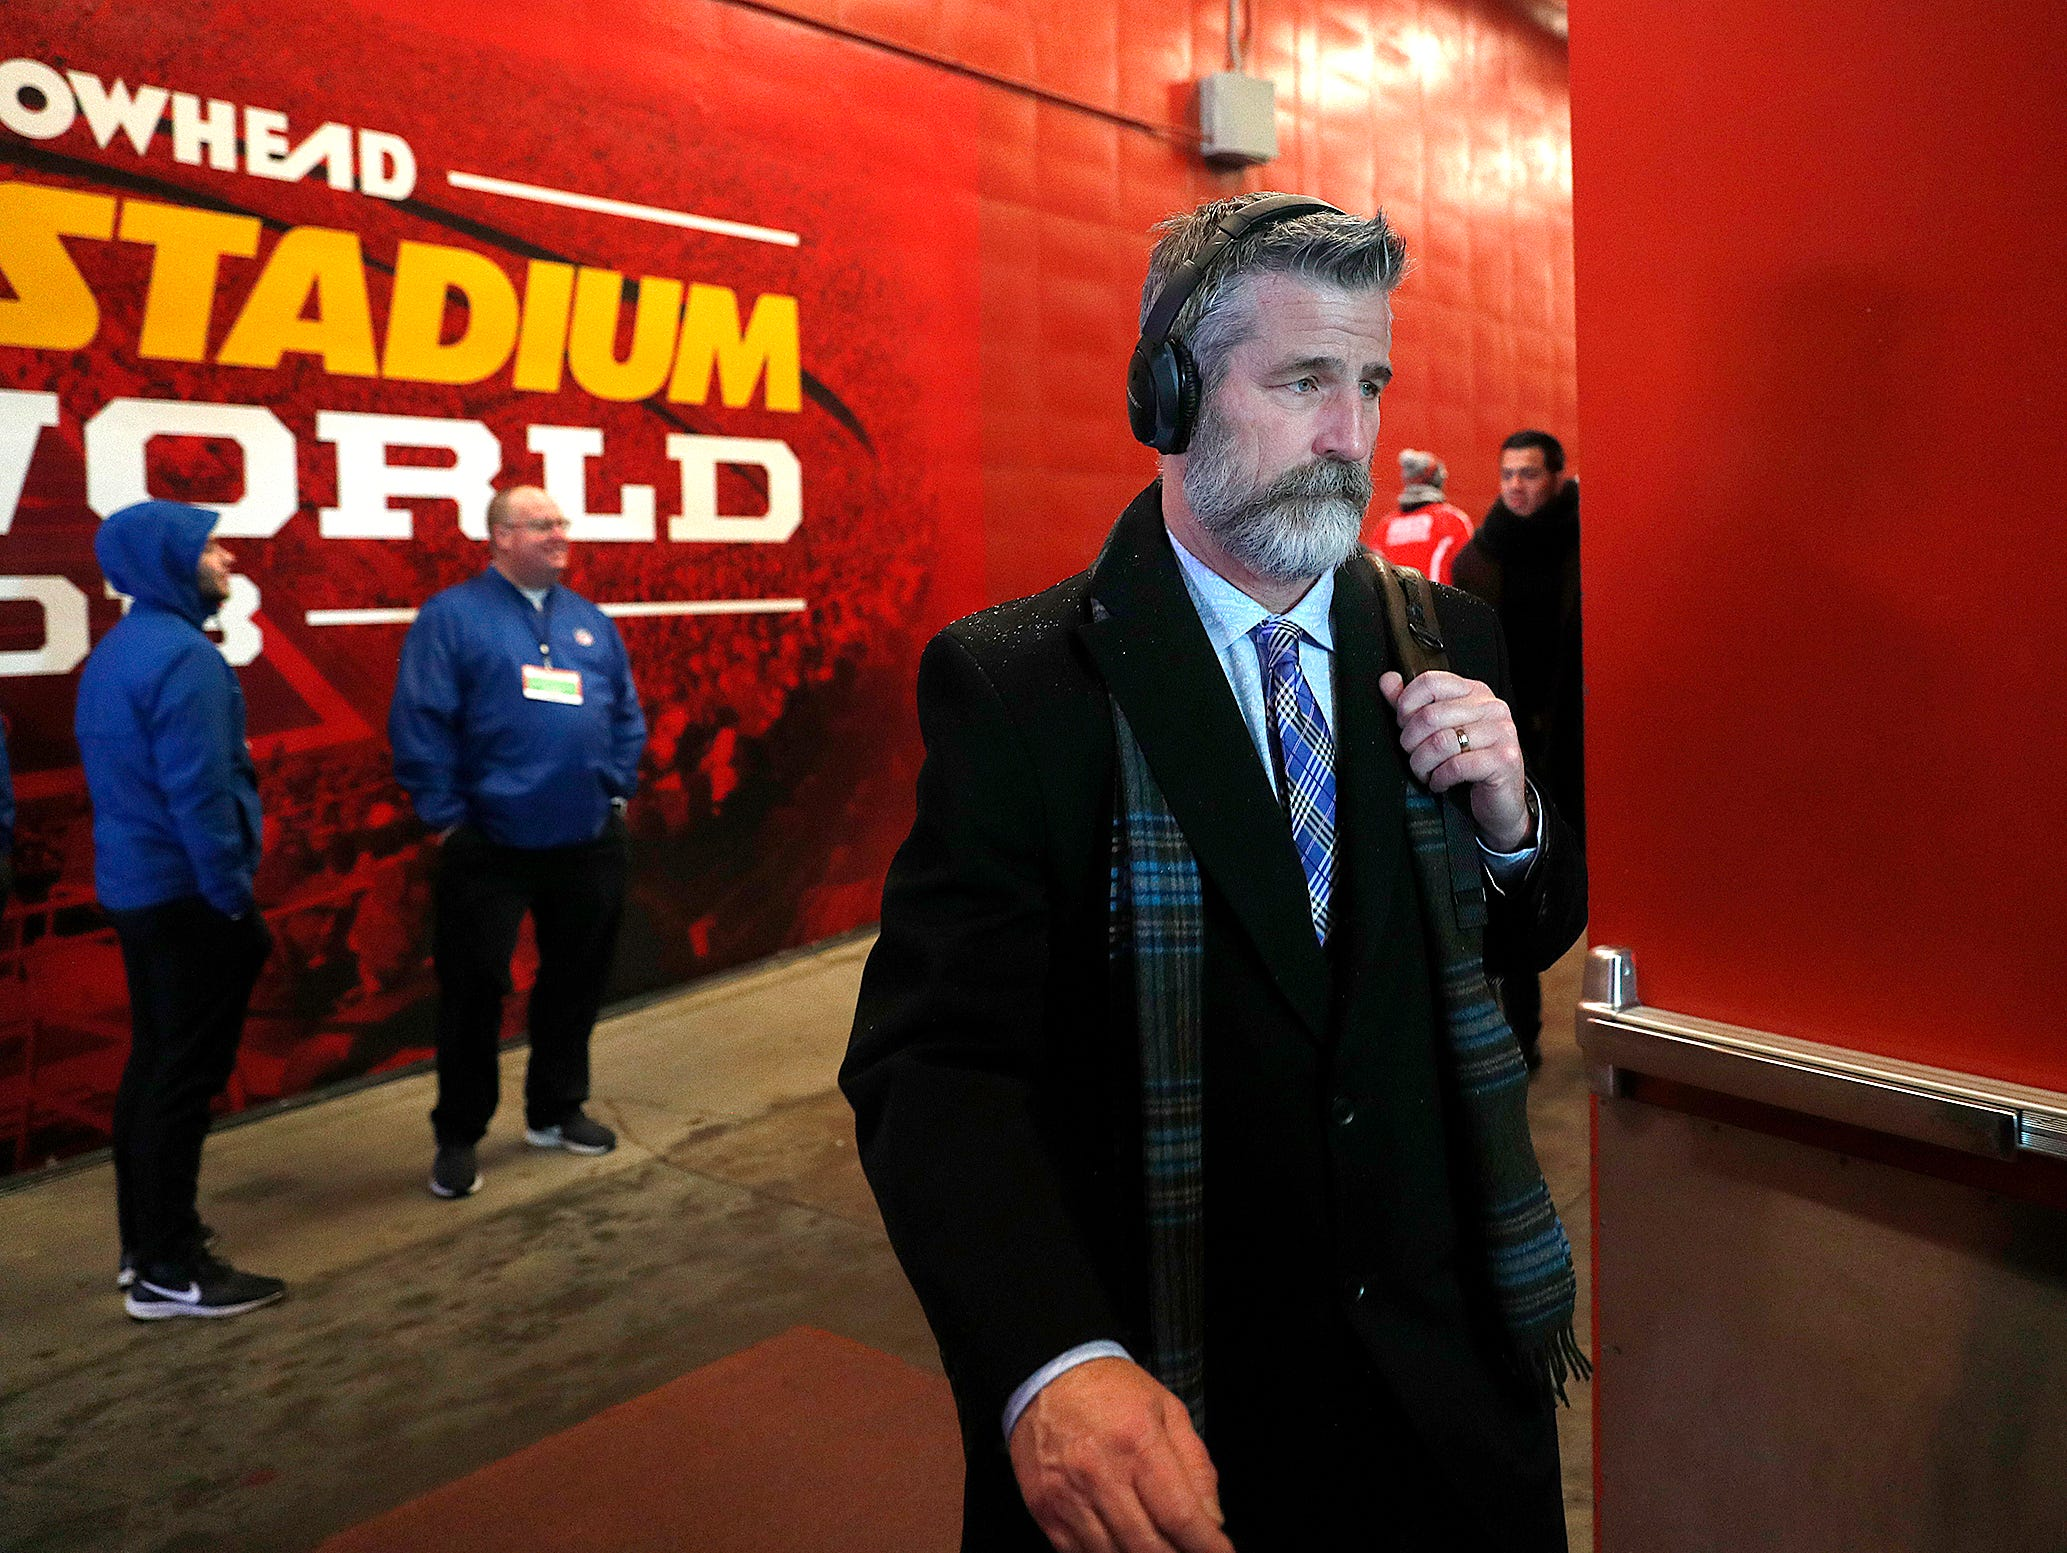 Indianapolis Colts head coach Frank Reich and the Indianapolis Colts arrive for their game against the Kansas City Chiefs at Arrowhead Stadium in Kansas City, MO., on Saturday, Jan. 12, 2019.